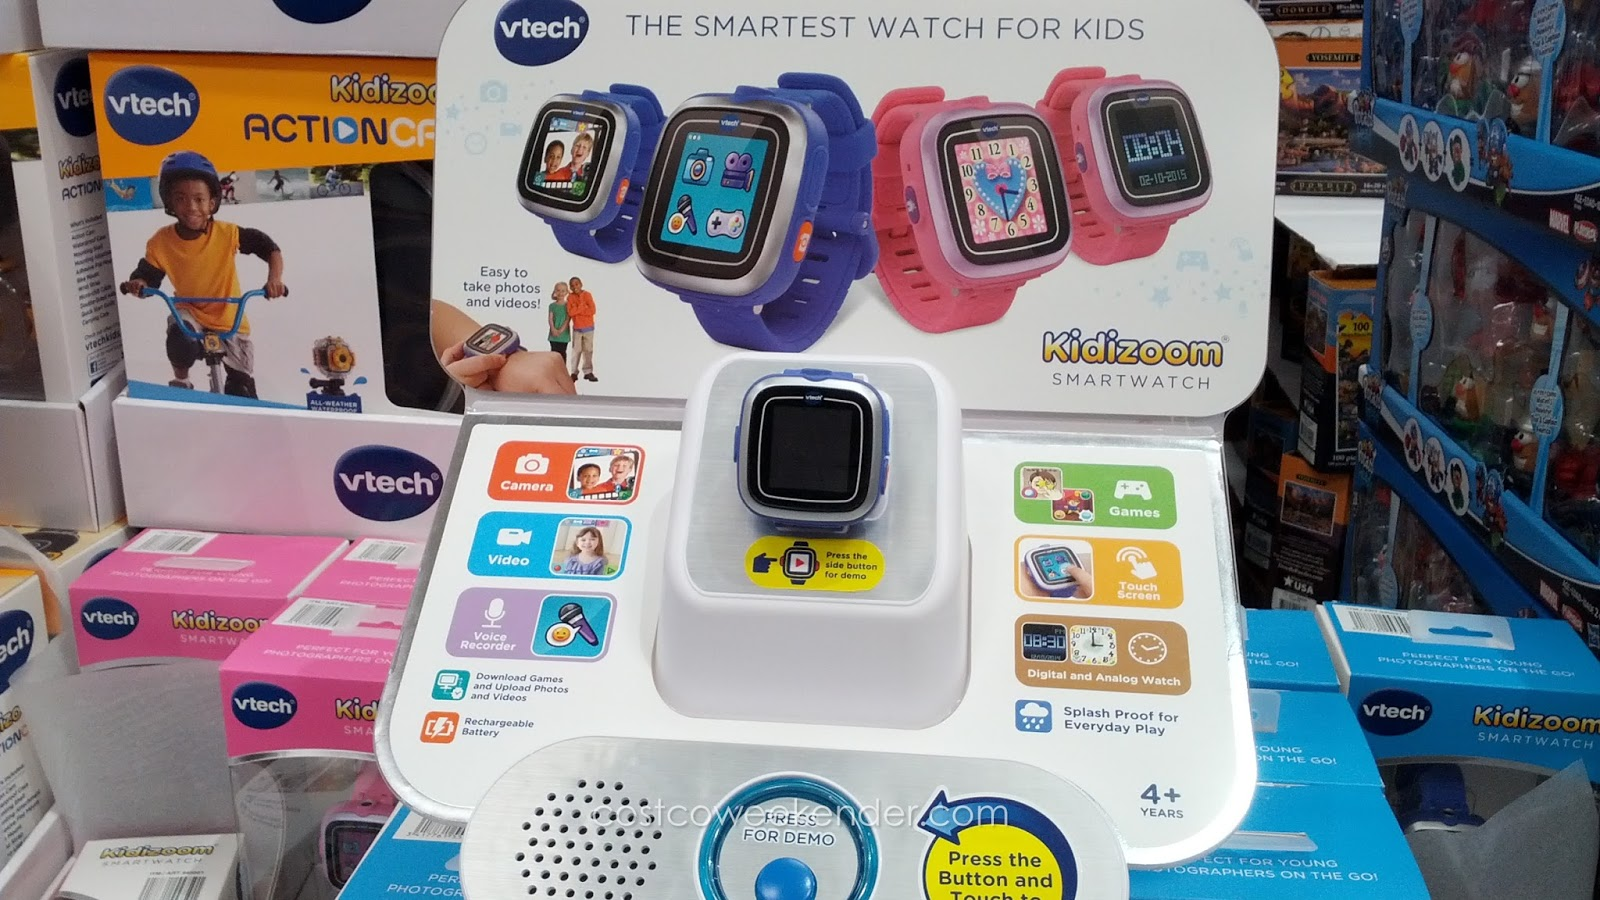 VTech Kidizoom Smartwatch – A watch that can also be a great learning tool